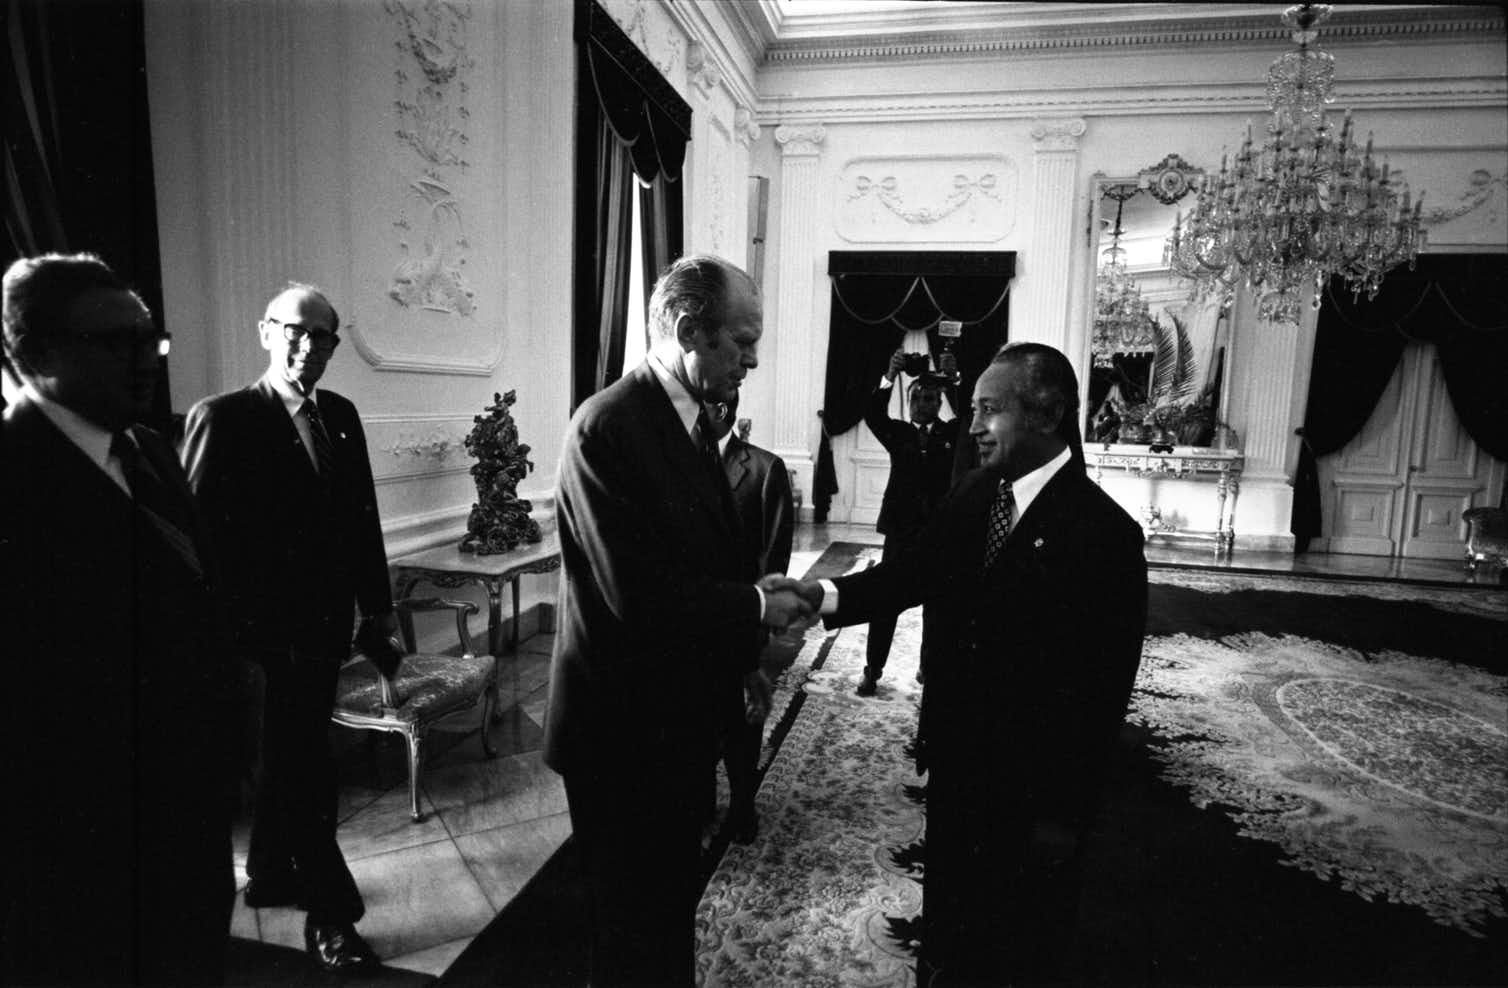 A black and white photo shows several men in a formal room, two of them shaking hands